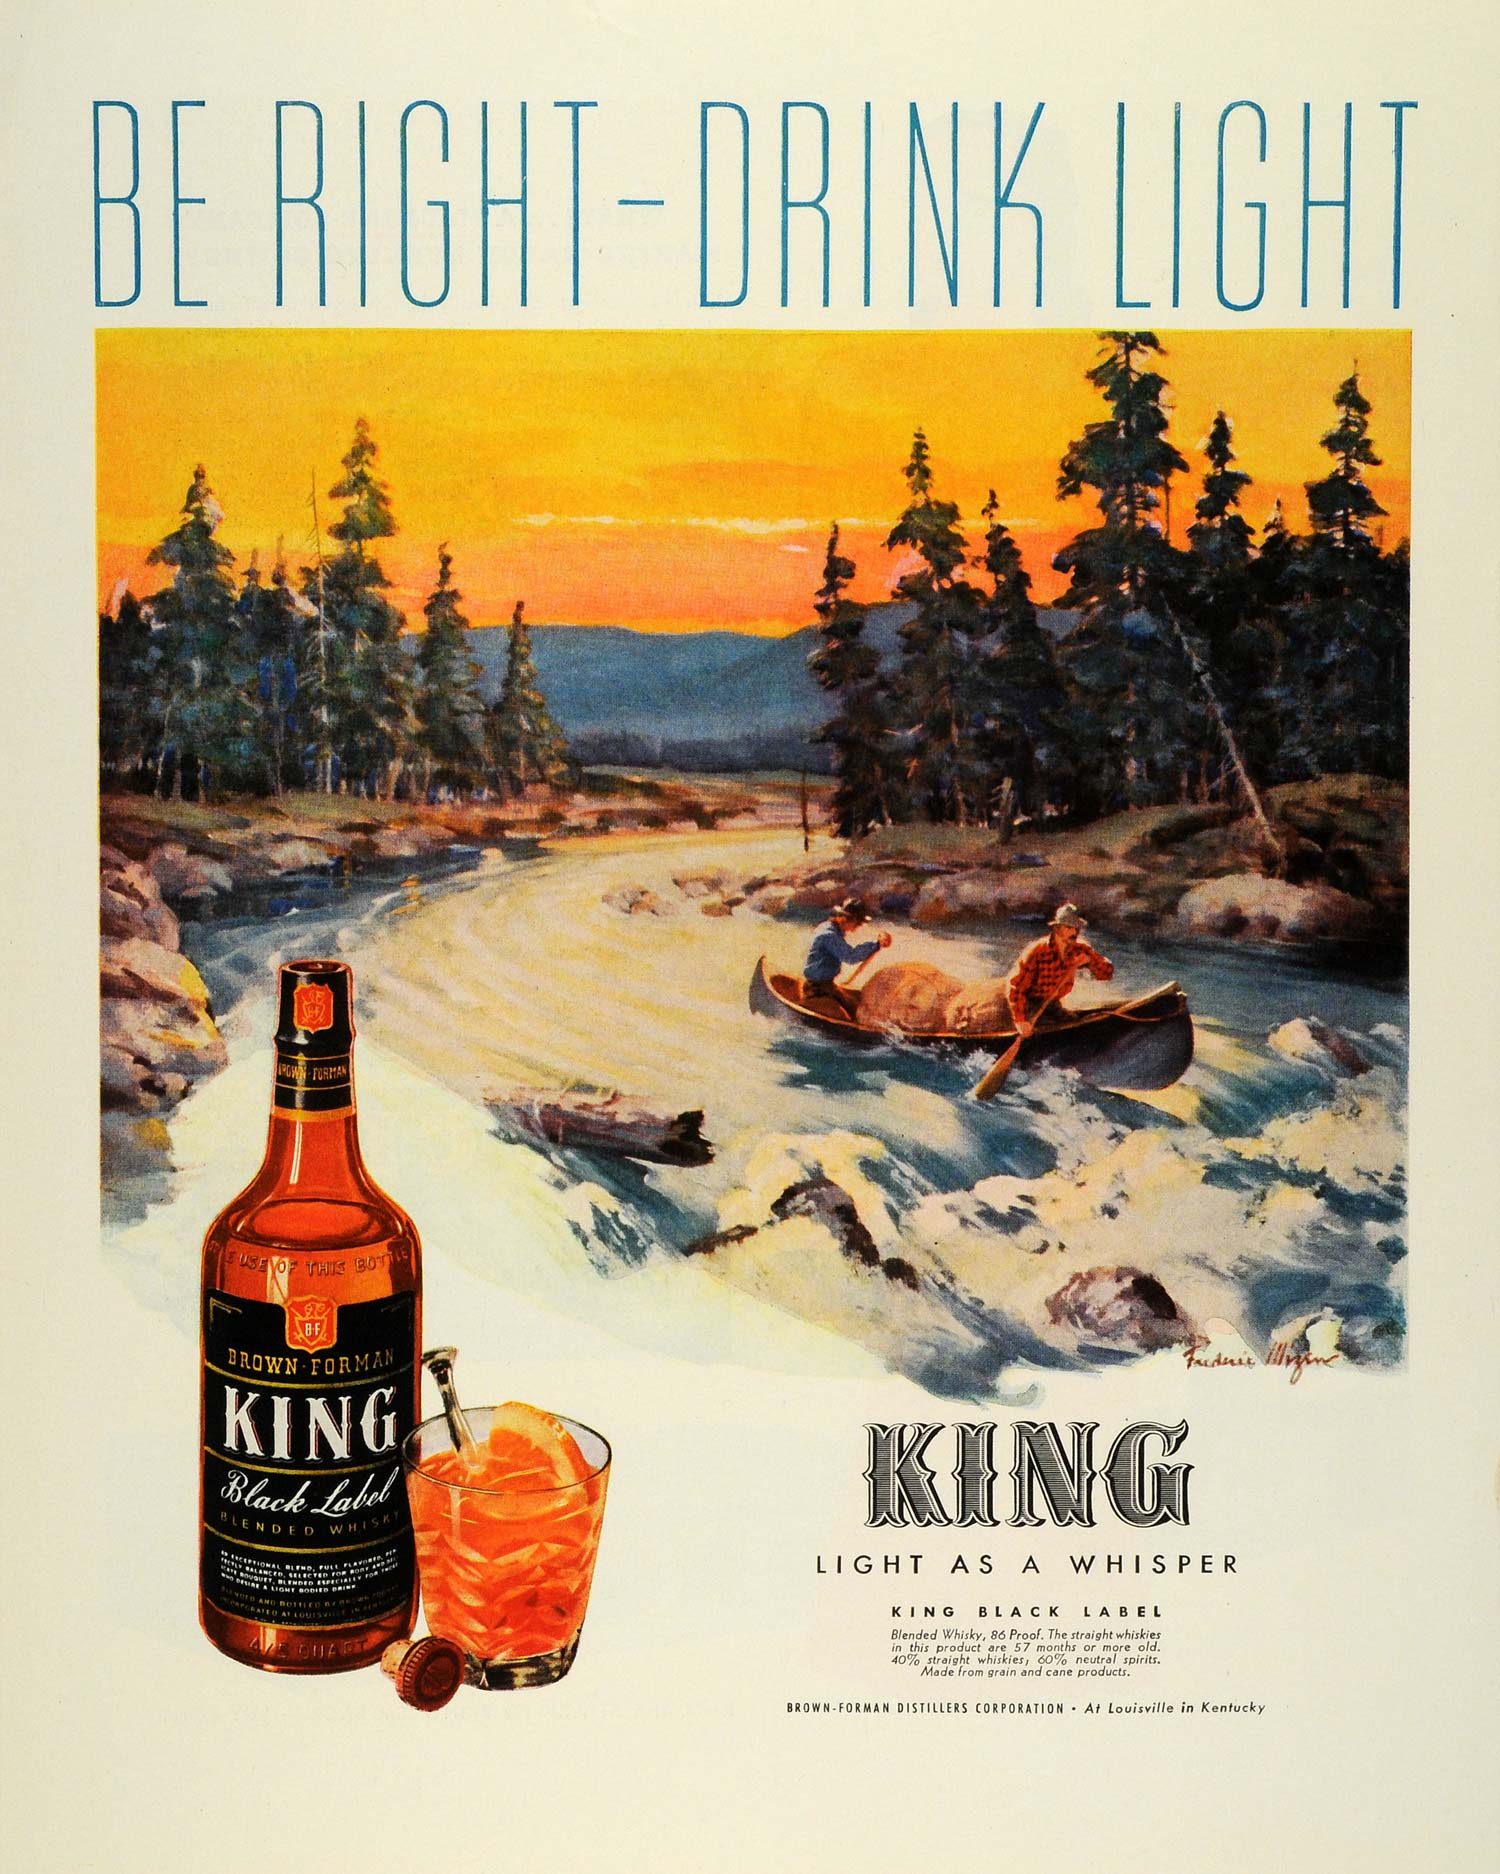 1944 Ad Brown Forman King Black Label Whisky Frederic Mizen Art Canoeing FZ6